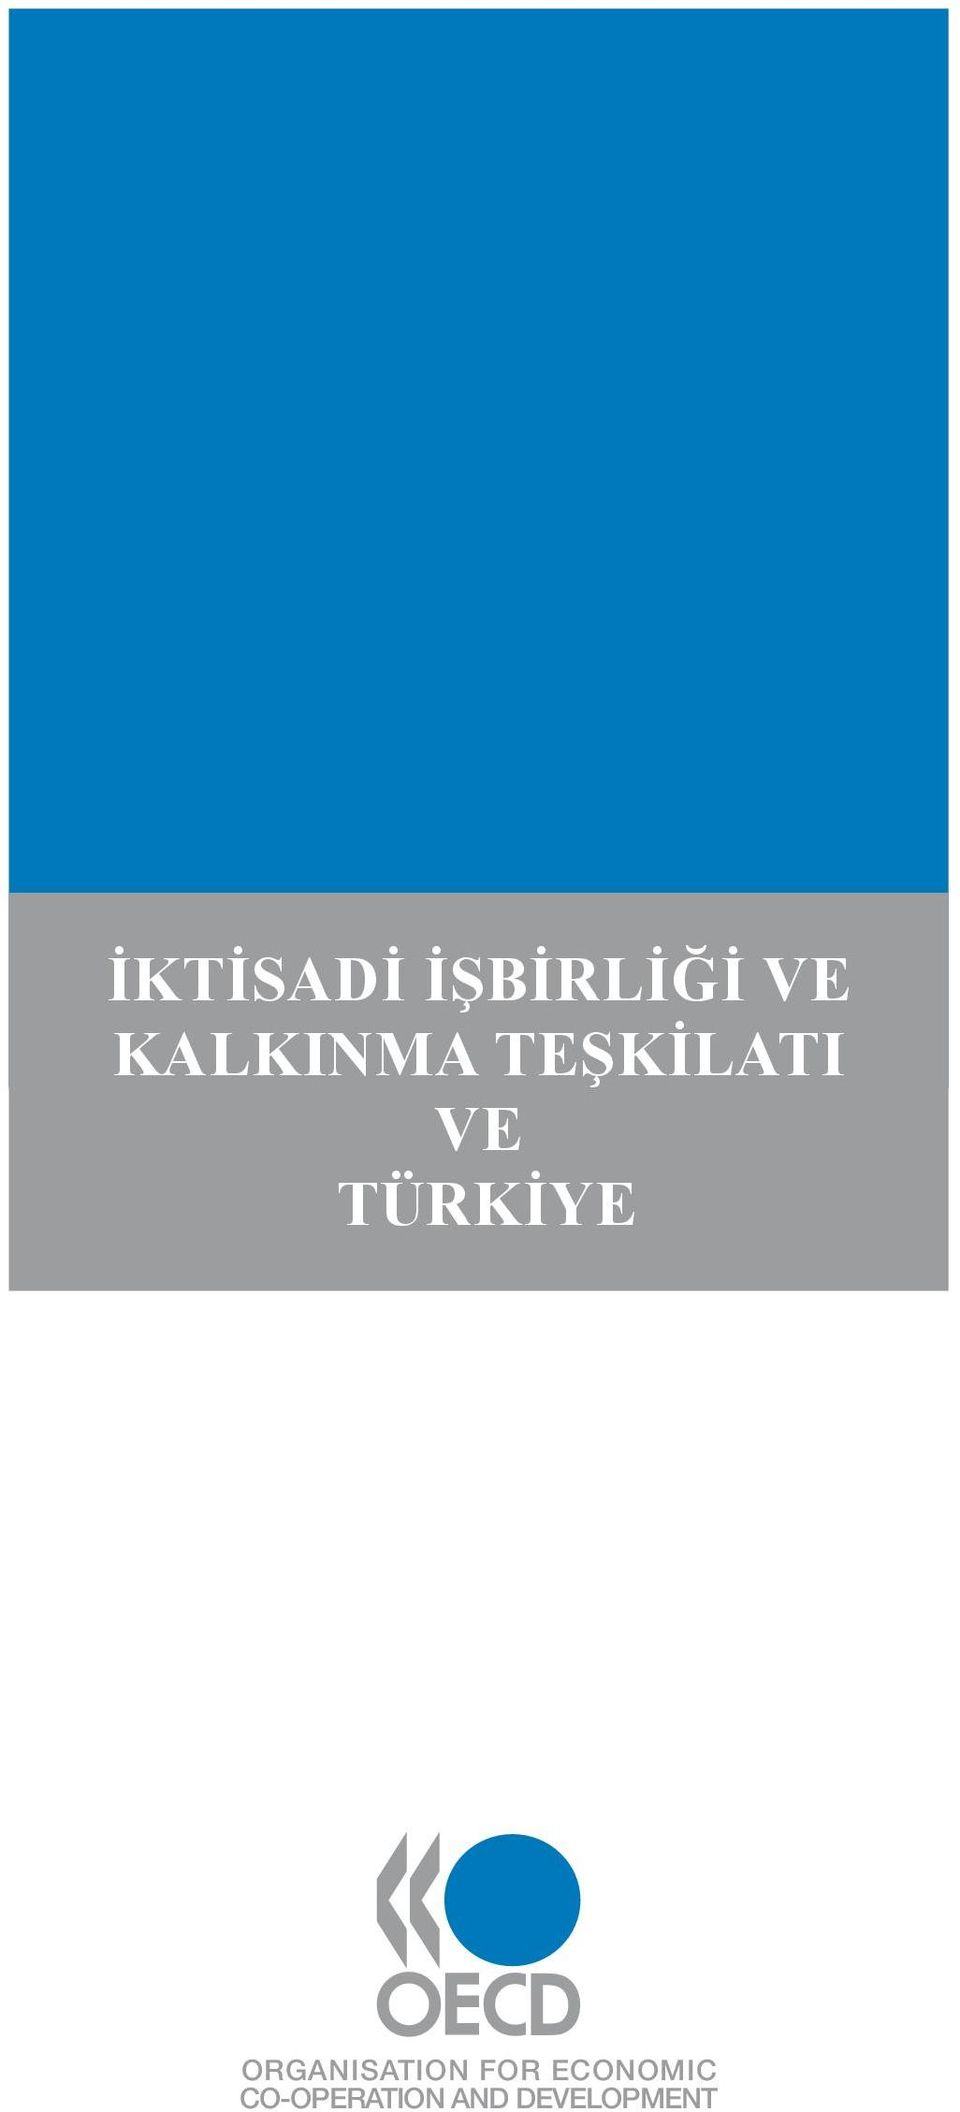 TÜRKİYE Organisation for